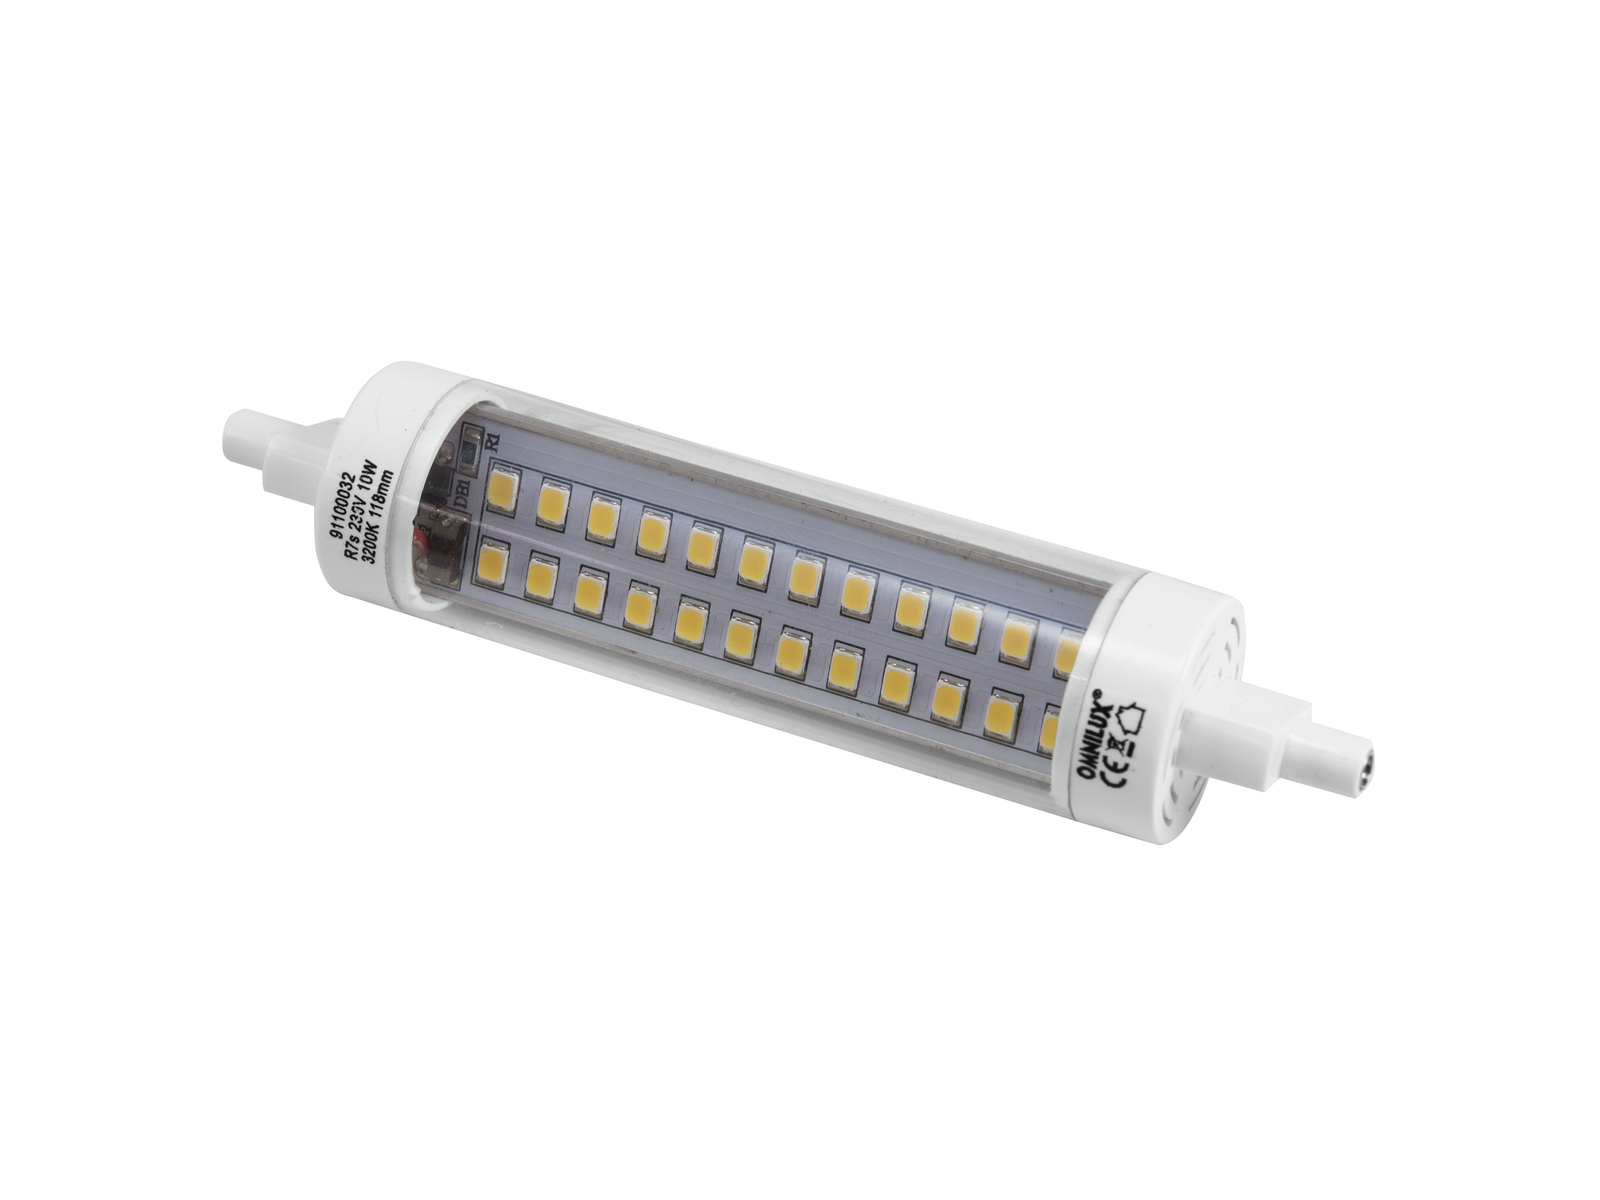 OMNILUX LED 230V/10W R7s 118mm